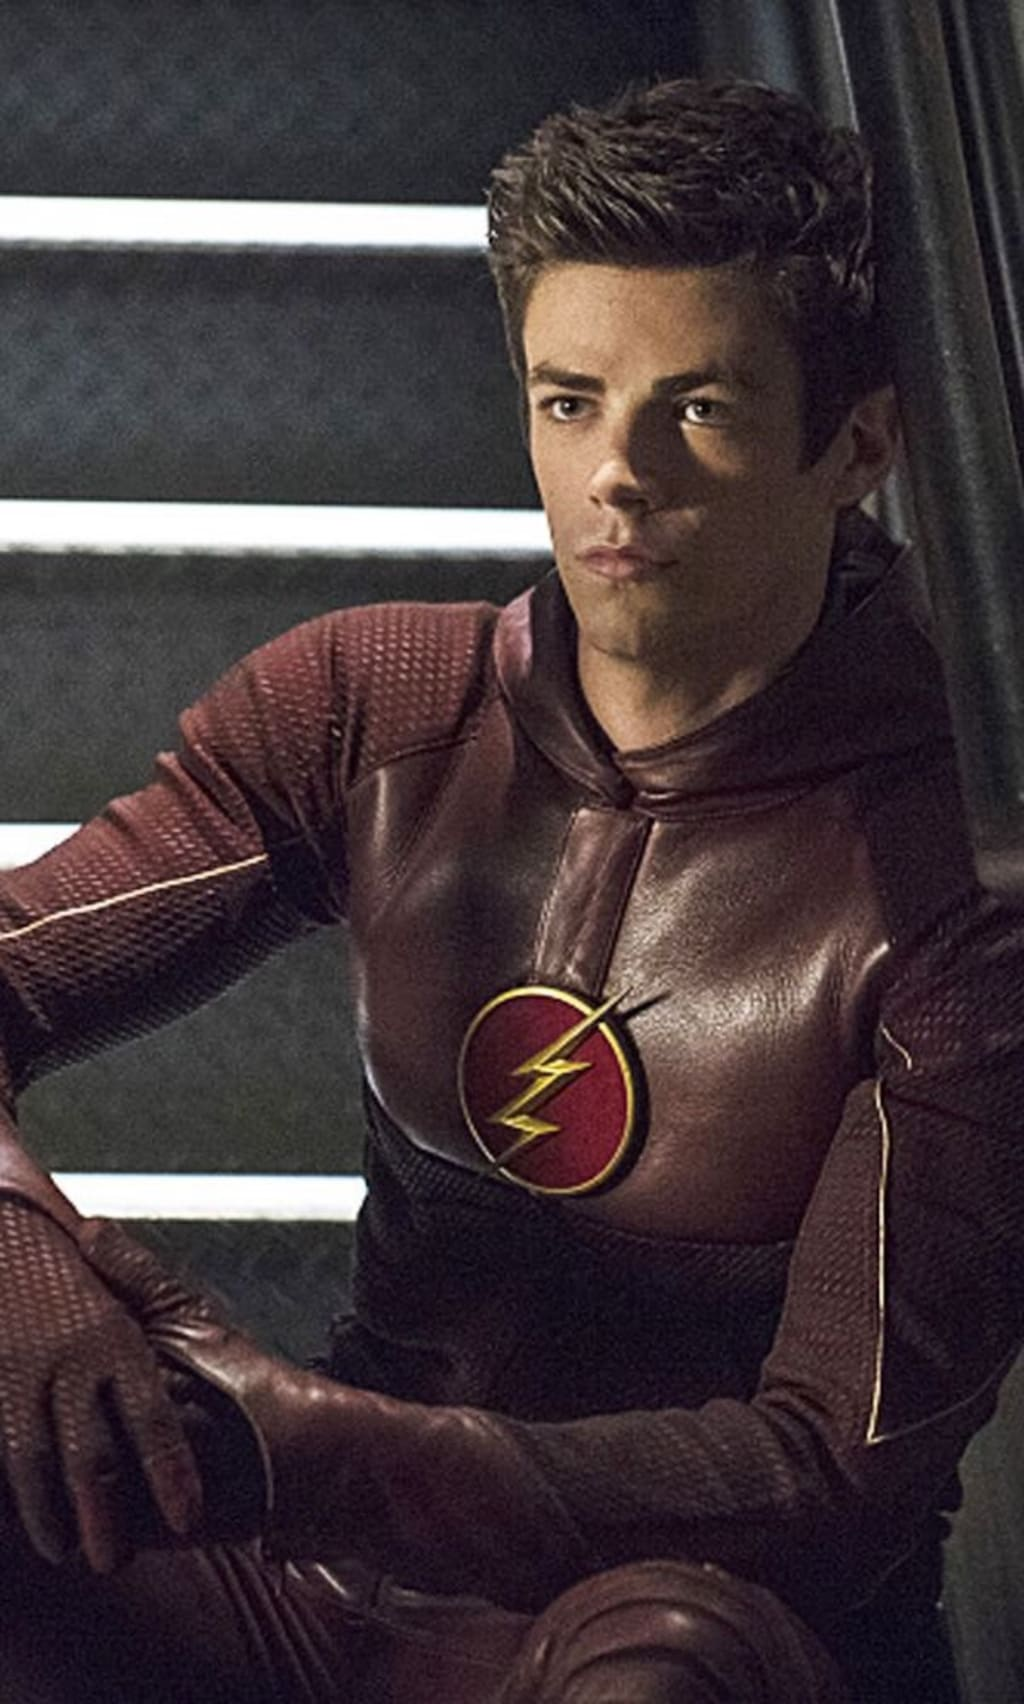 Why 'The Flash' Season 3 Wasn't as Bad as Everybody Makes It Out To Be